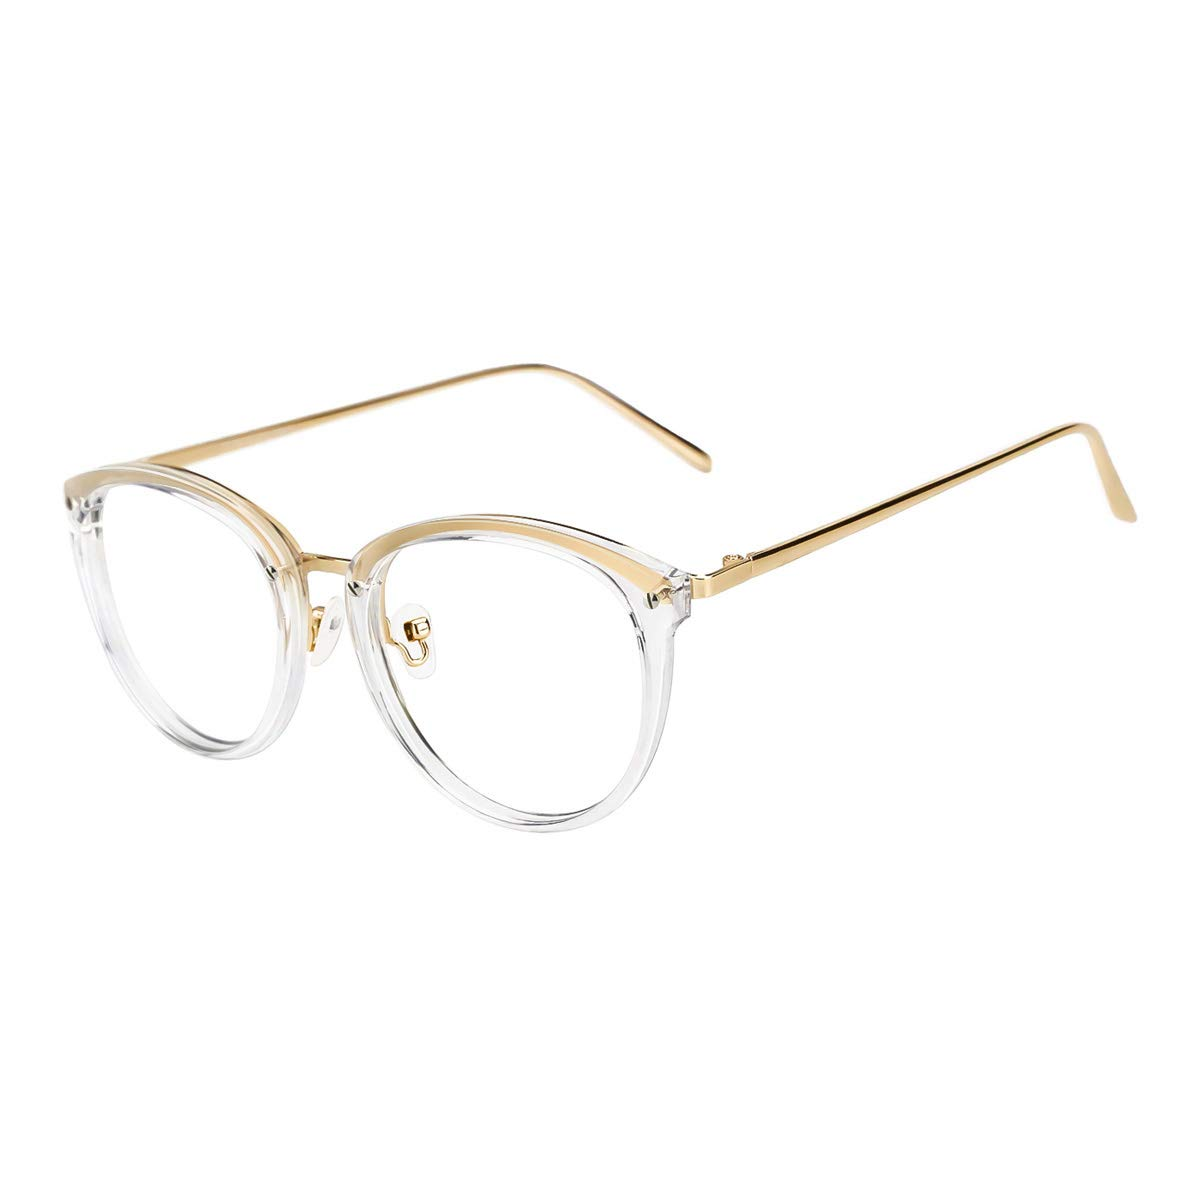 223aedef8540 Amazon.com  TIJN Vintage Round Metal Optical Eyewear Non-prescription Eyeglasses  Frame for Women  Shoes